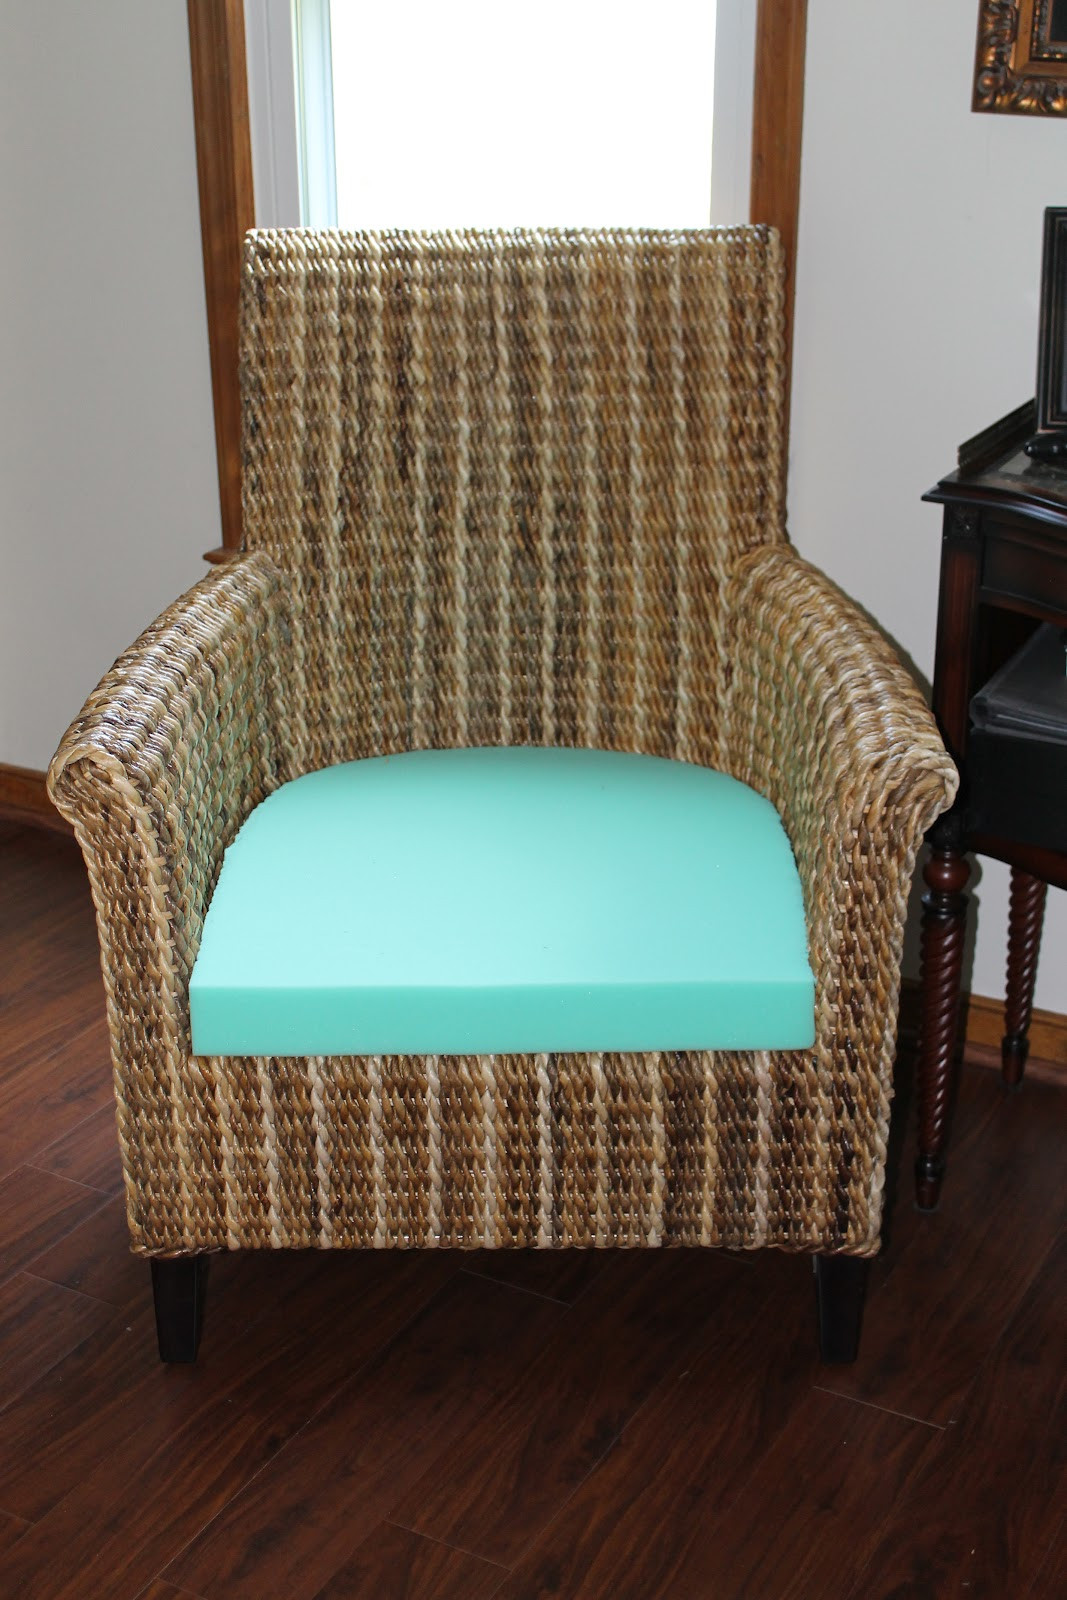 Best ideas about DIY Chair Cushion . Save or Pin Magnolia Mommy Made DIY Chair Cushions Now.